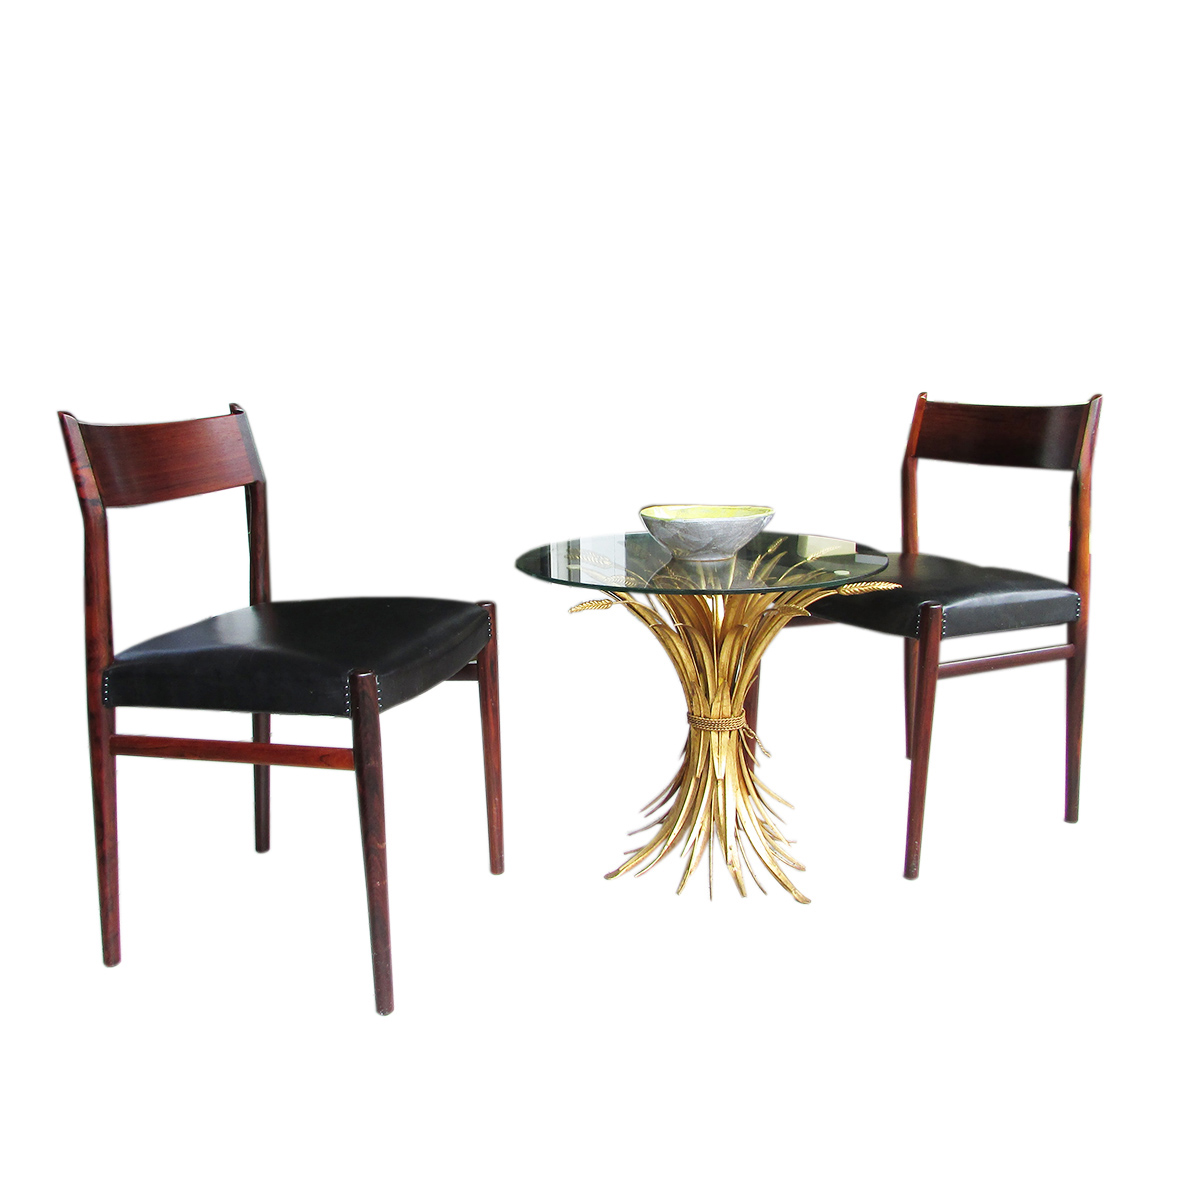 sibast-vodder-rosewood-chair-418